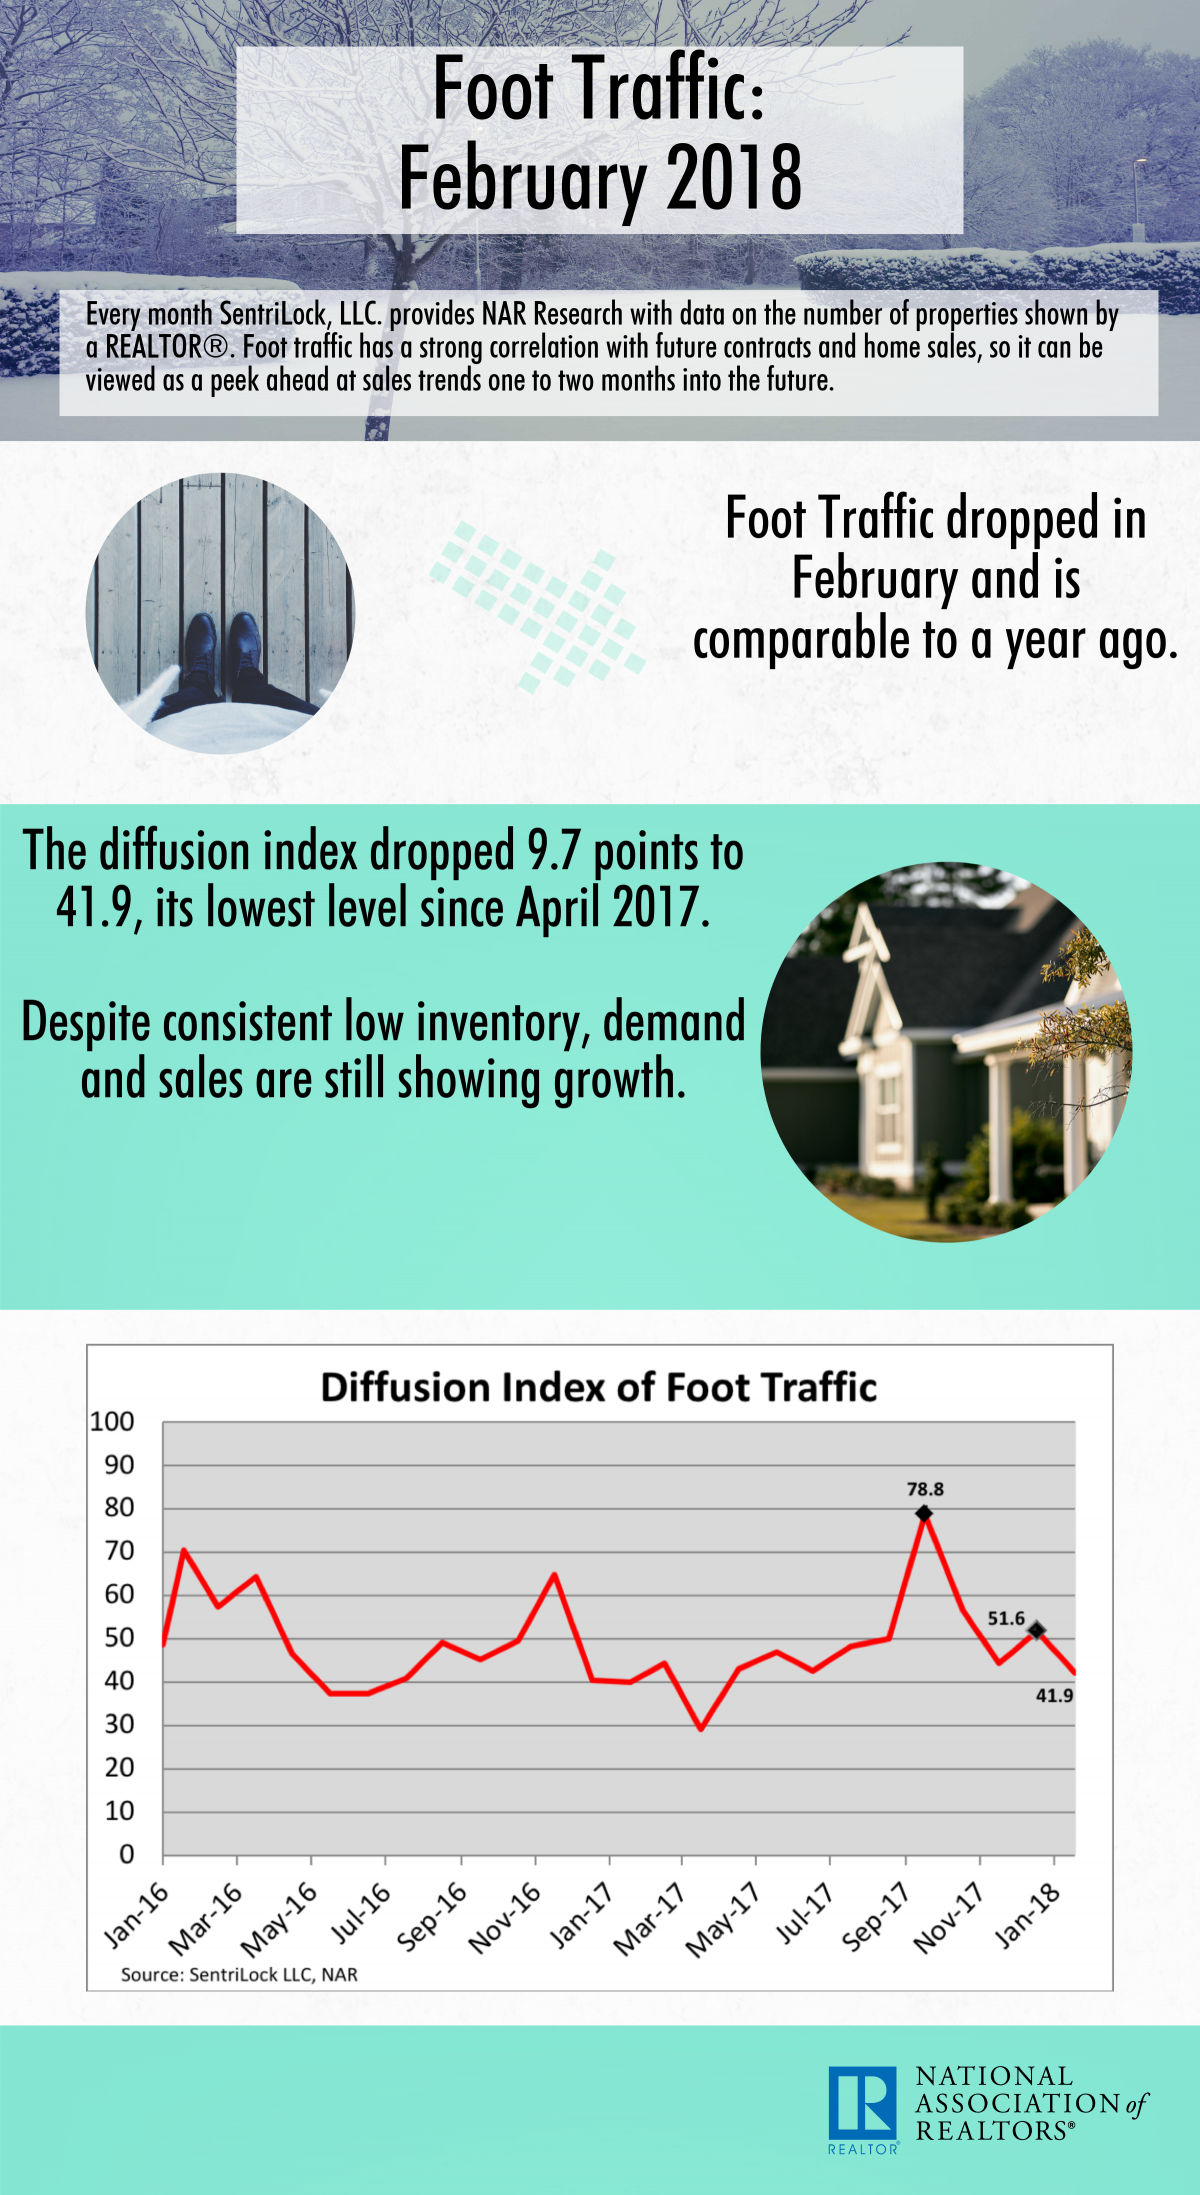 February 2018 Foot Traffic infographic